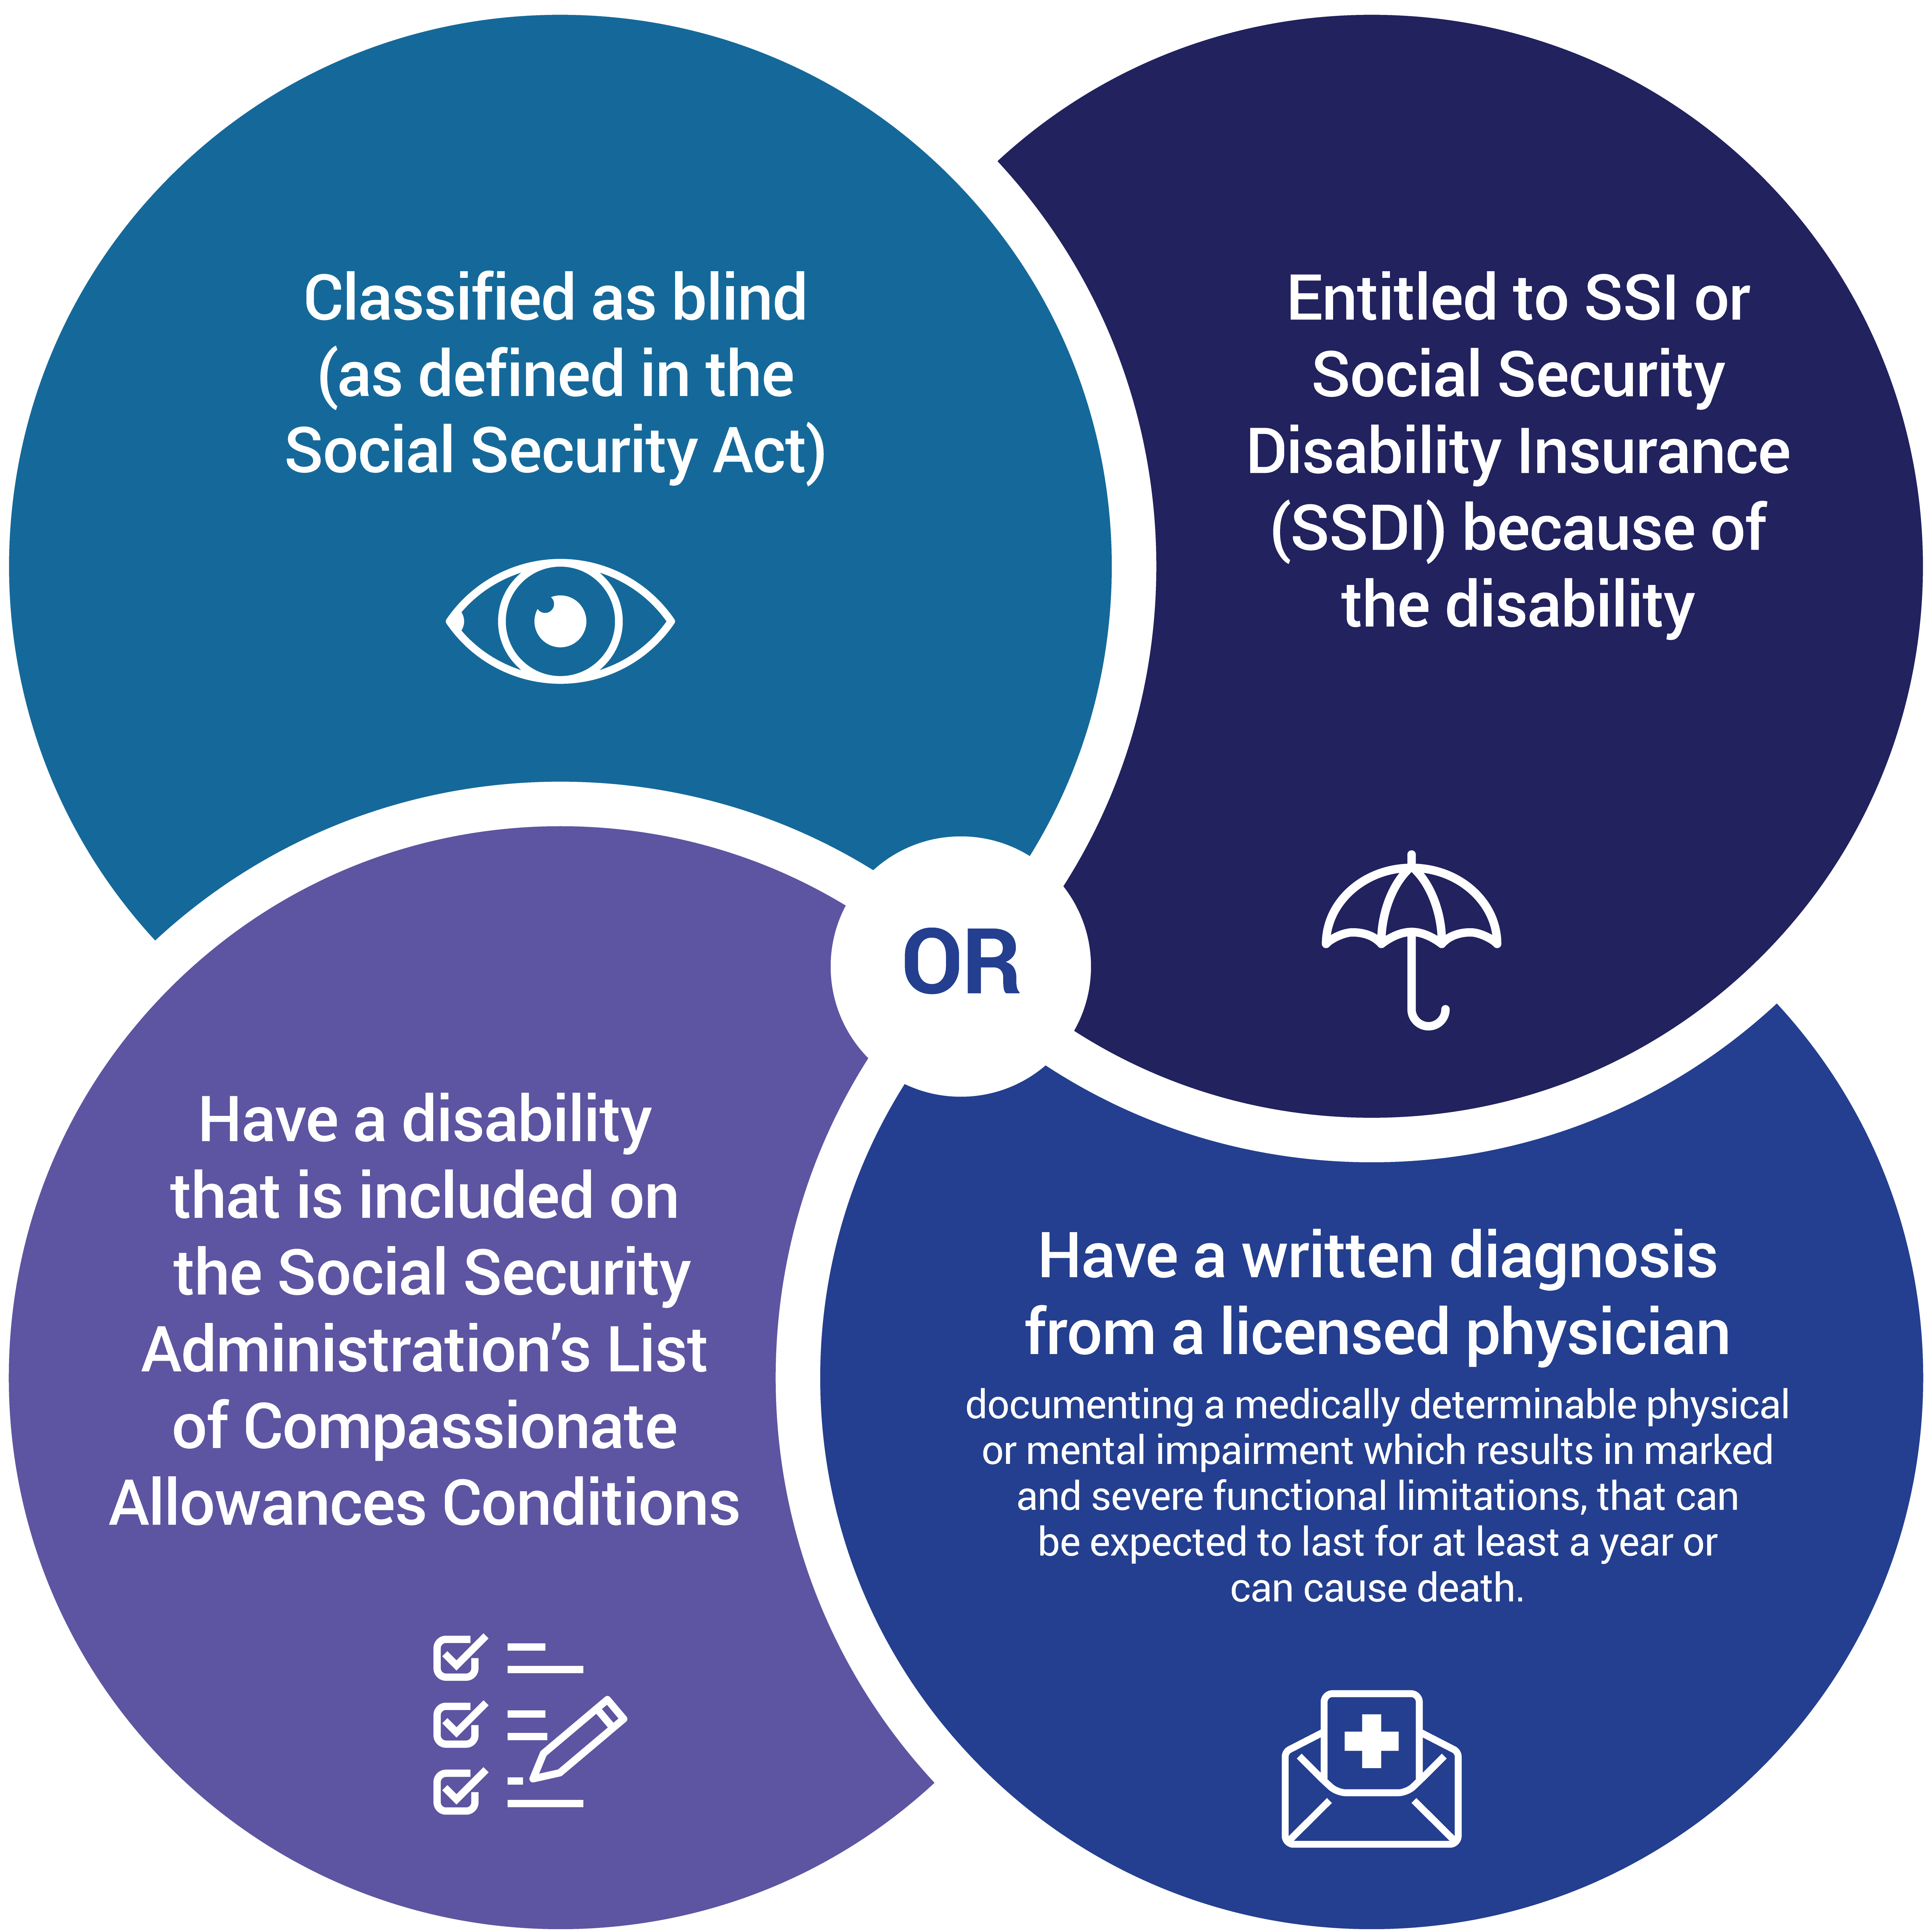 To be eligible, a beneficiary must have a disability that was present before age 26, with one of the following: Classified as blind (as defined in the Social Security Act), or Entitled to SSI or Social Security Disability Insurance (SSDI) because of the disability or Have a disability that is included on the Social Security Administration's List of Compassionate Allowances Conditions or Have a written diagnosis from a licensed physician documenting a medically determinable physical or mental impairment which results in marked and severe functional limitations, that can be expected to last for at least a year or can cause death.